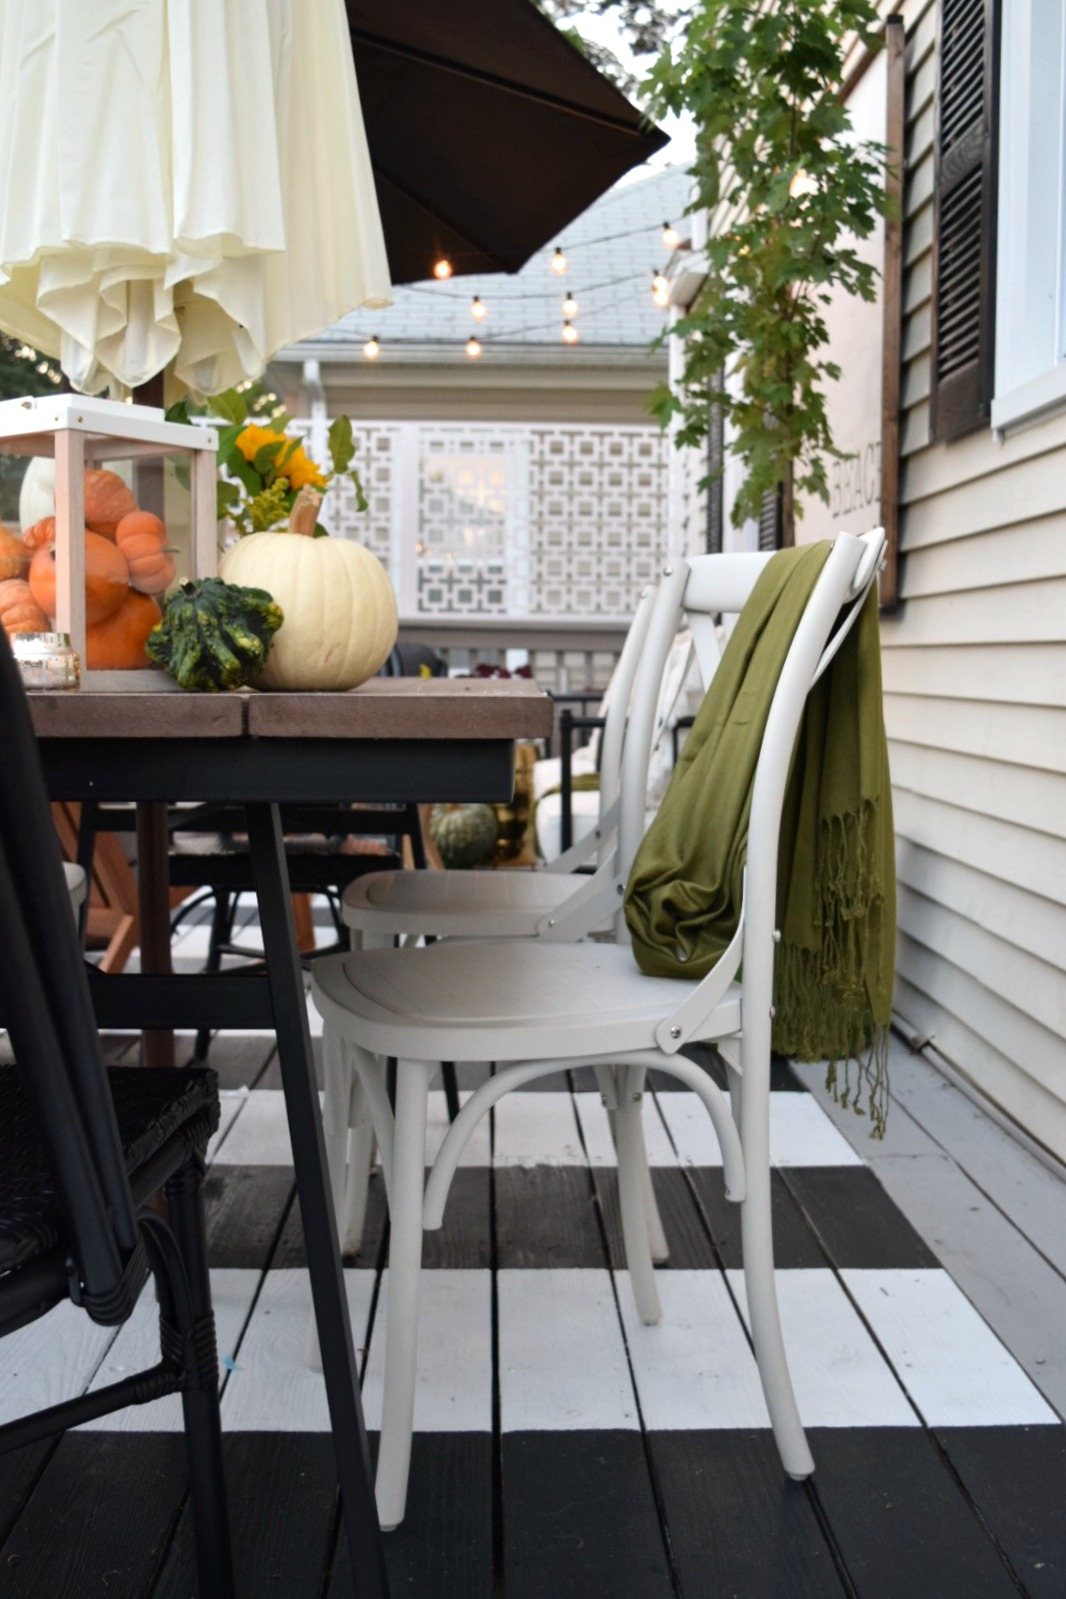 Simple Fall Table Setting Idea for Outdoor Entertaining